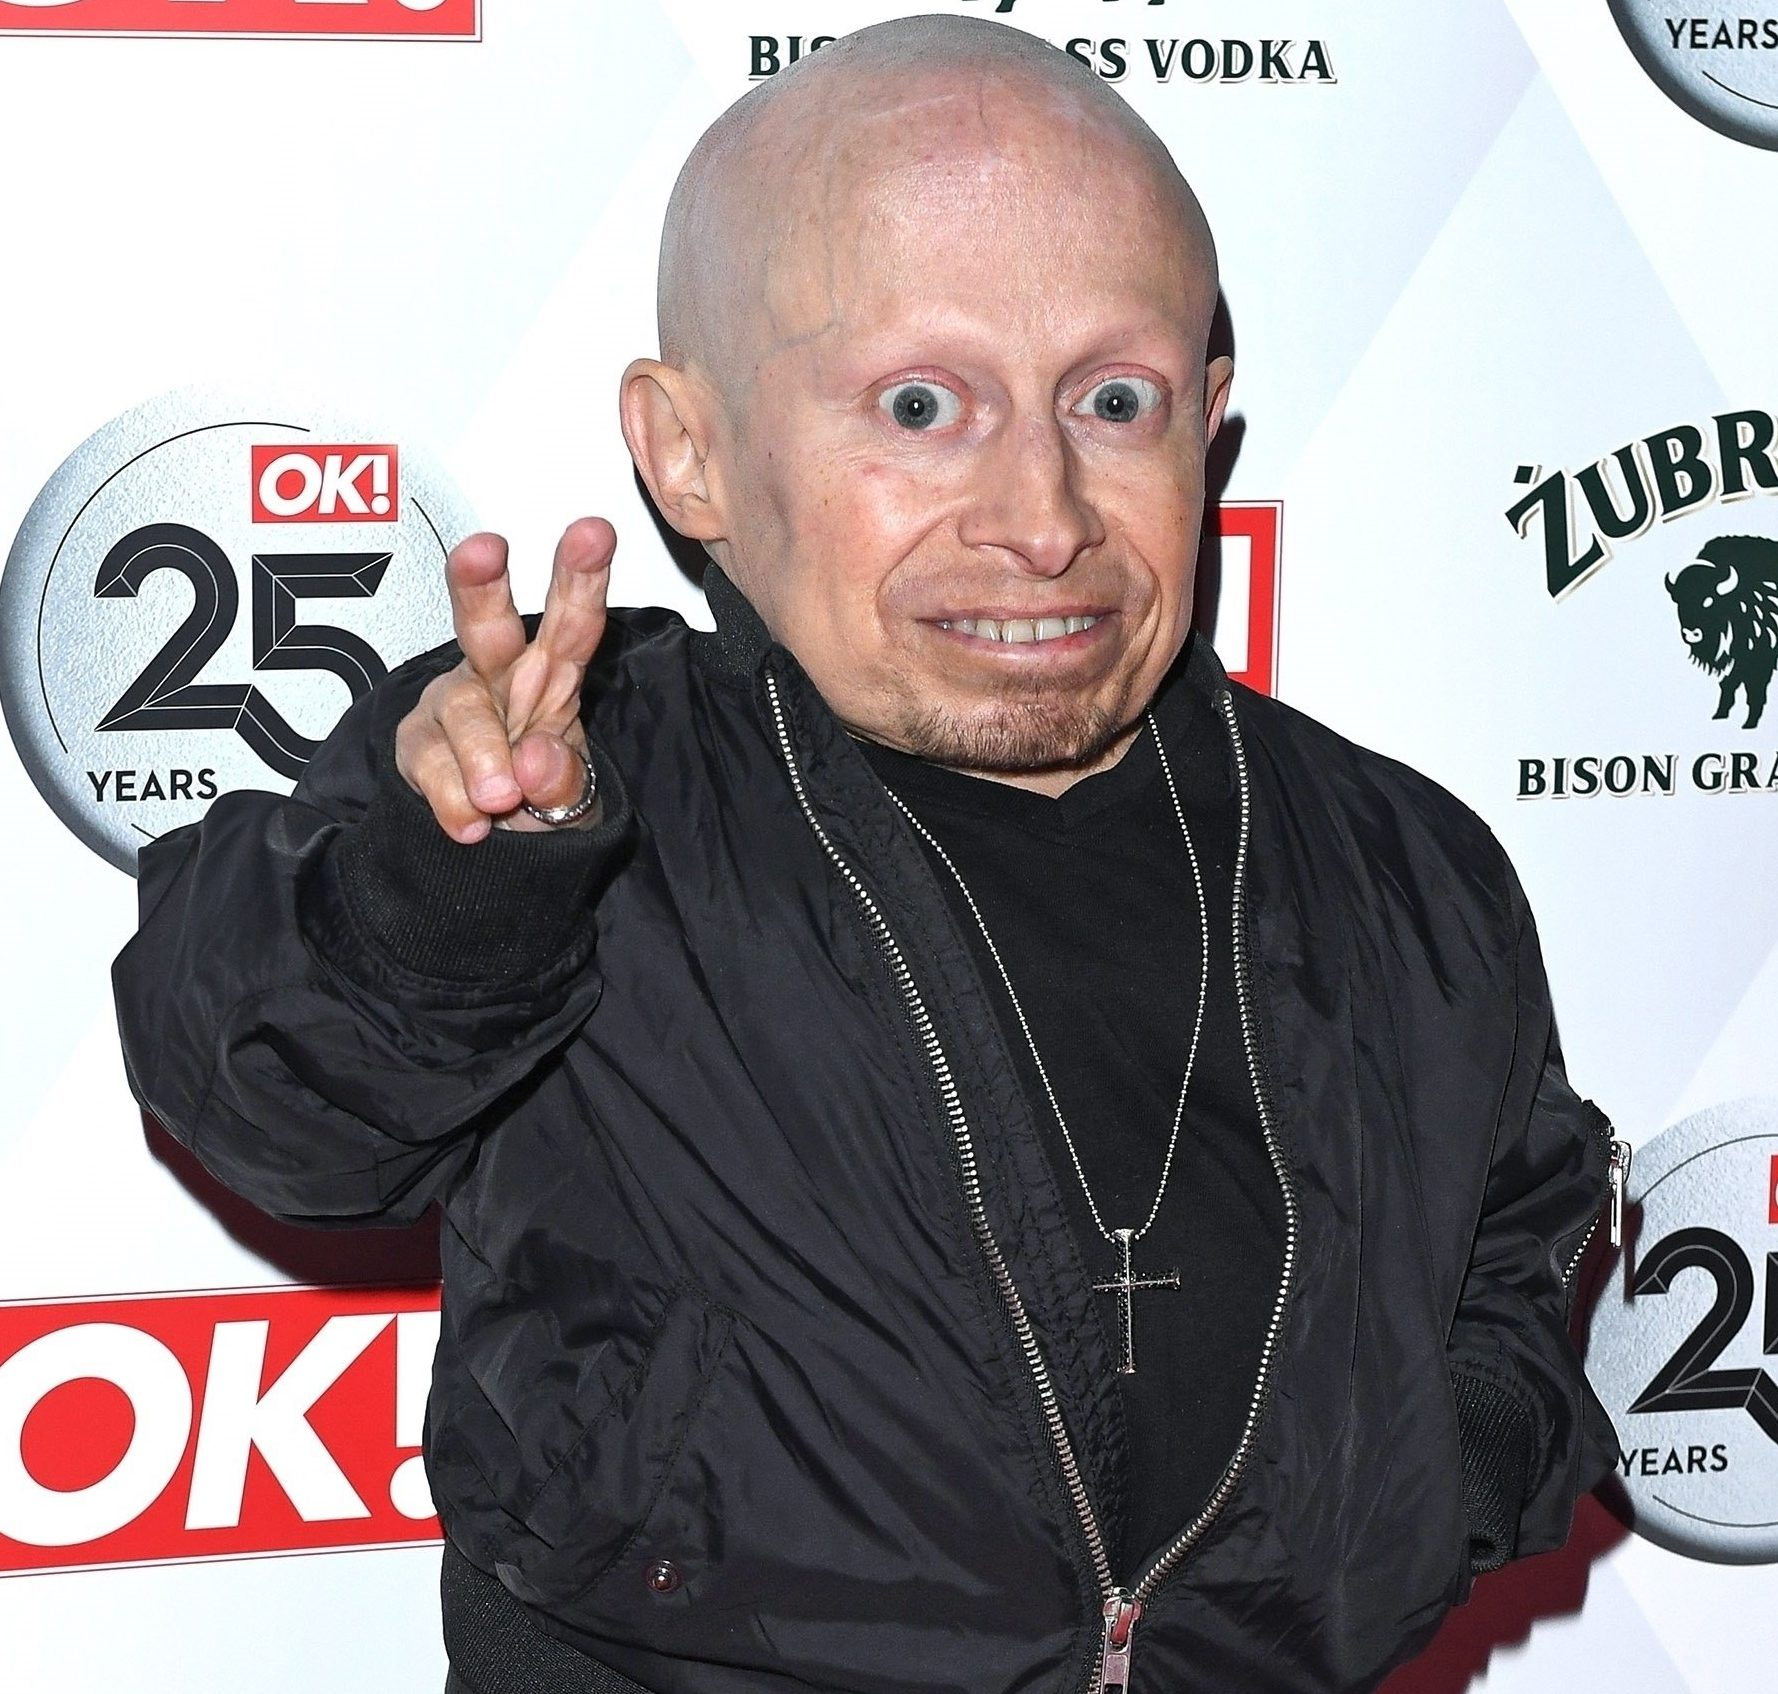 Verne Troyer all smiles during last public appearance weeks before his death